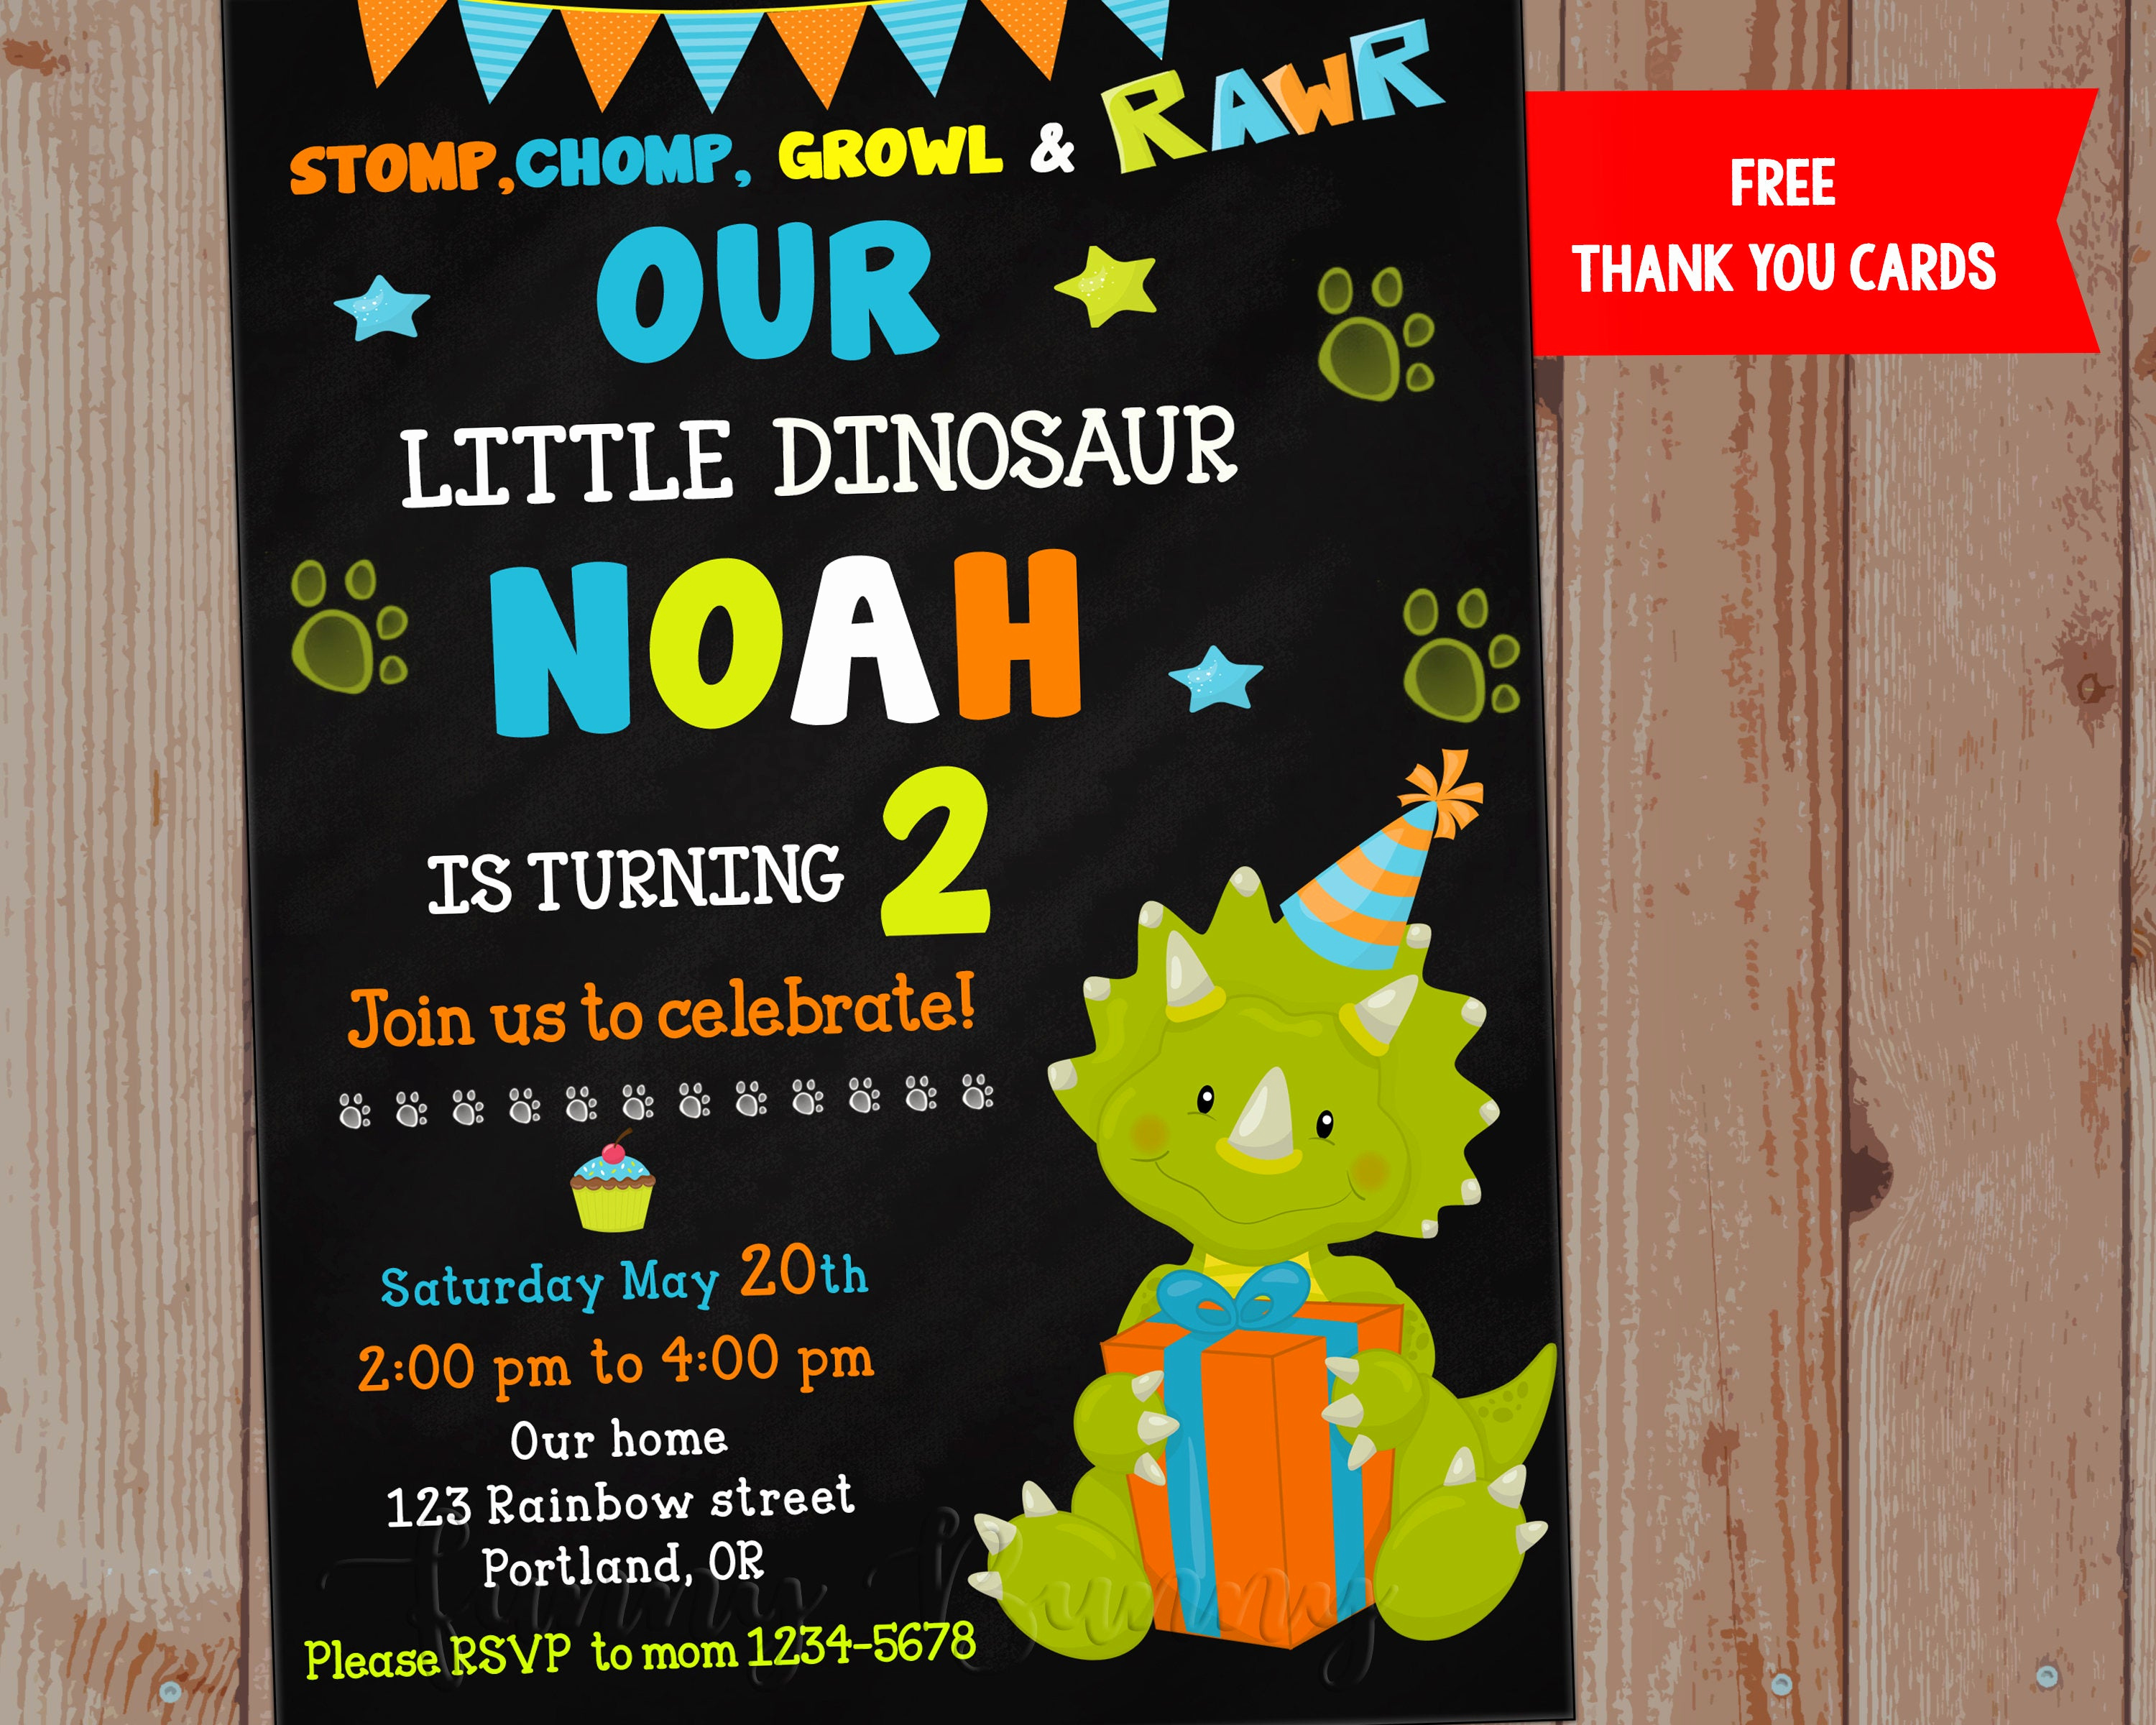 Dinosaur Birthday Invitation Wording Lovely Dinosaur Birthday Invitation Dinosaur Invitation Dinosaur